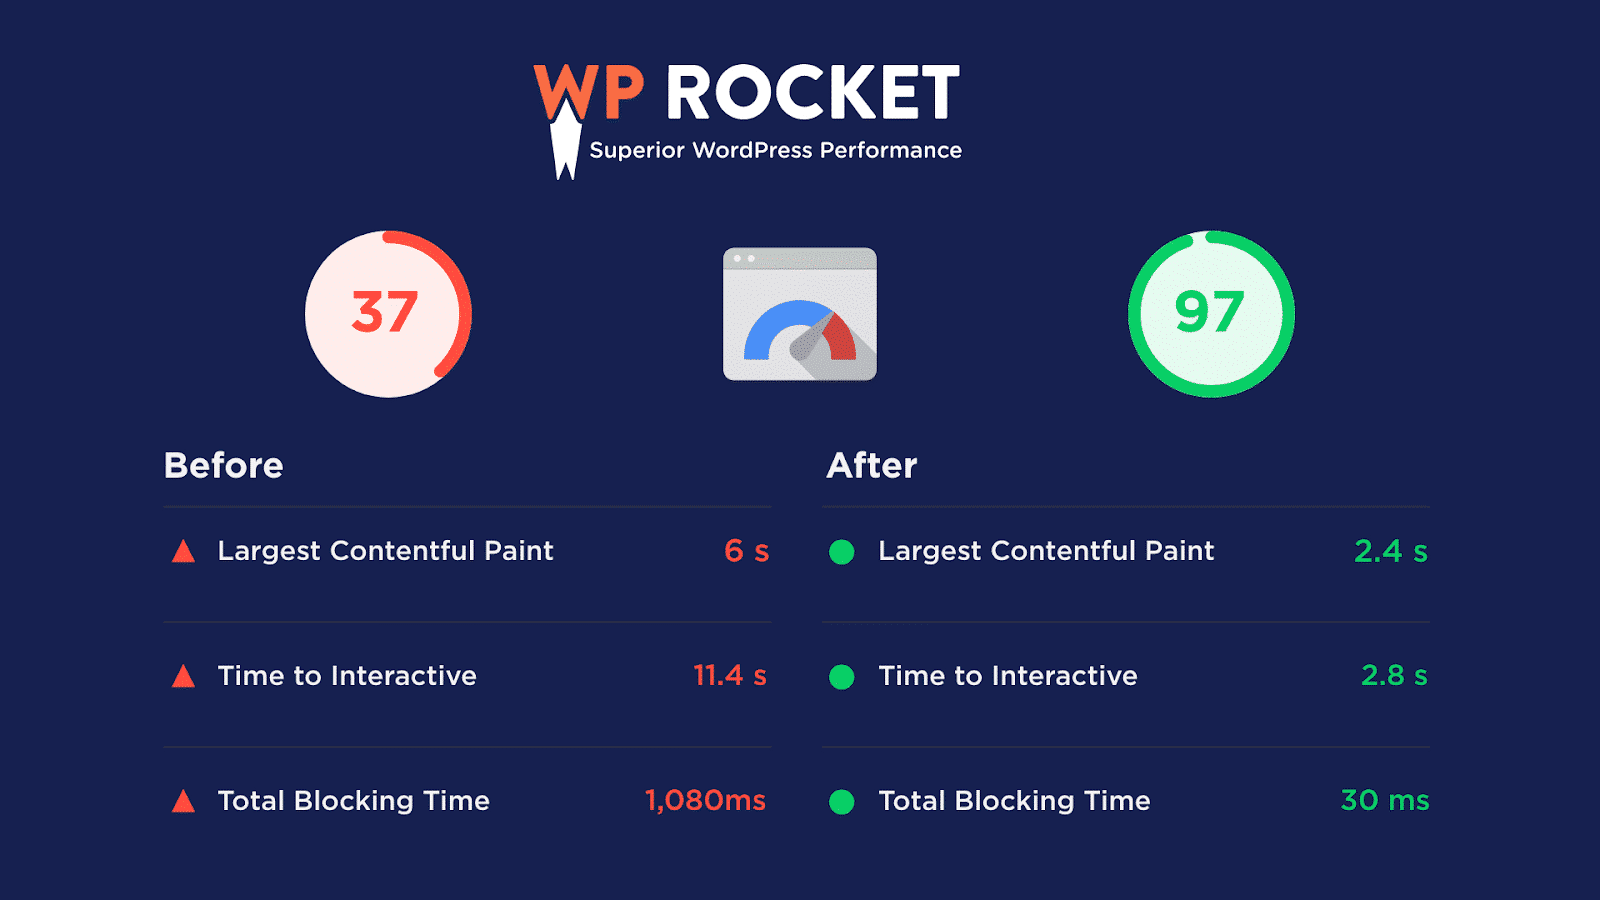 WP Rocket results - Before and after